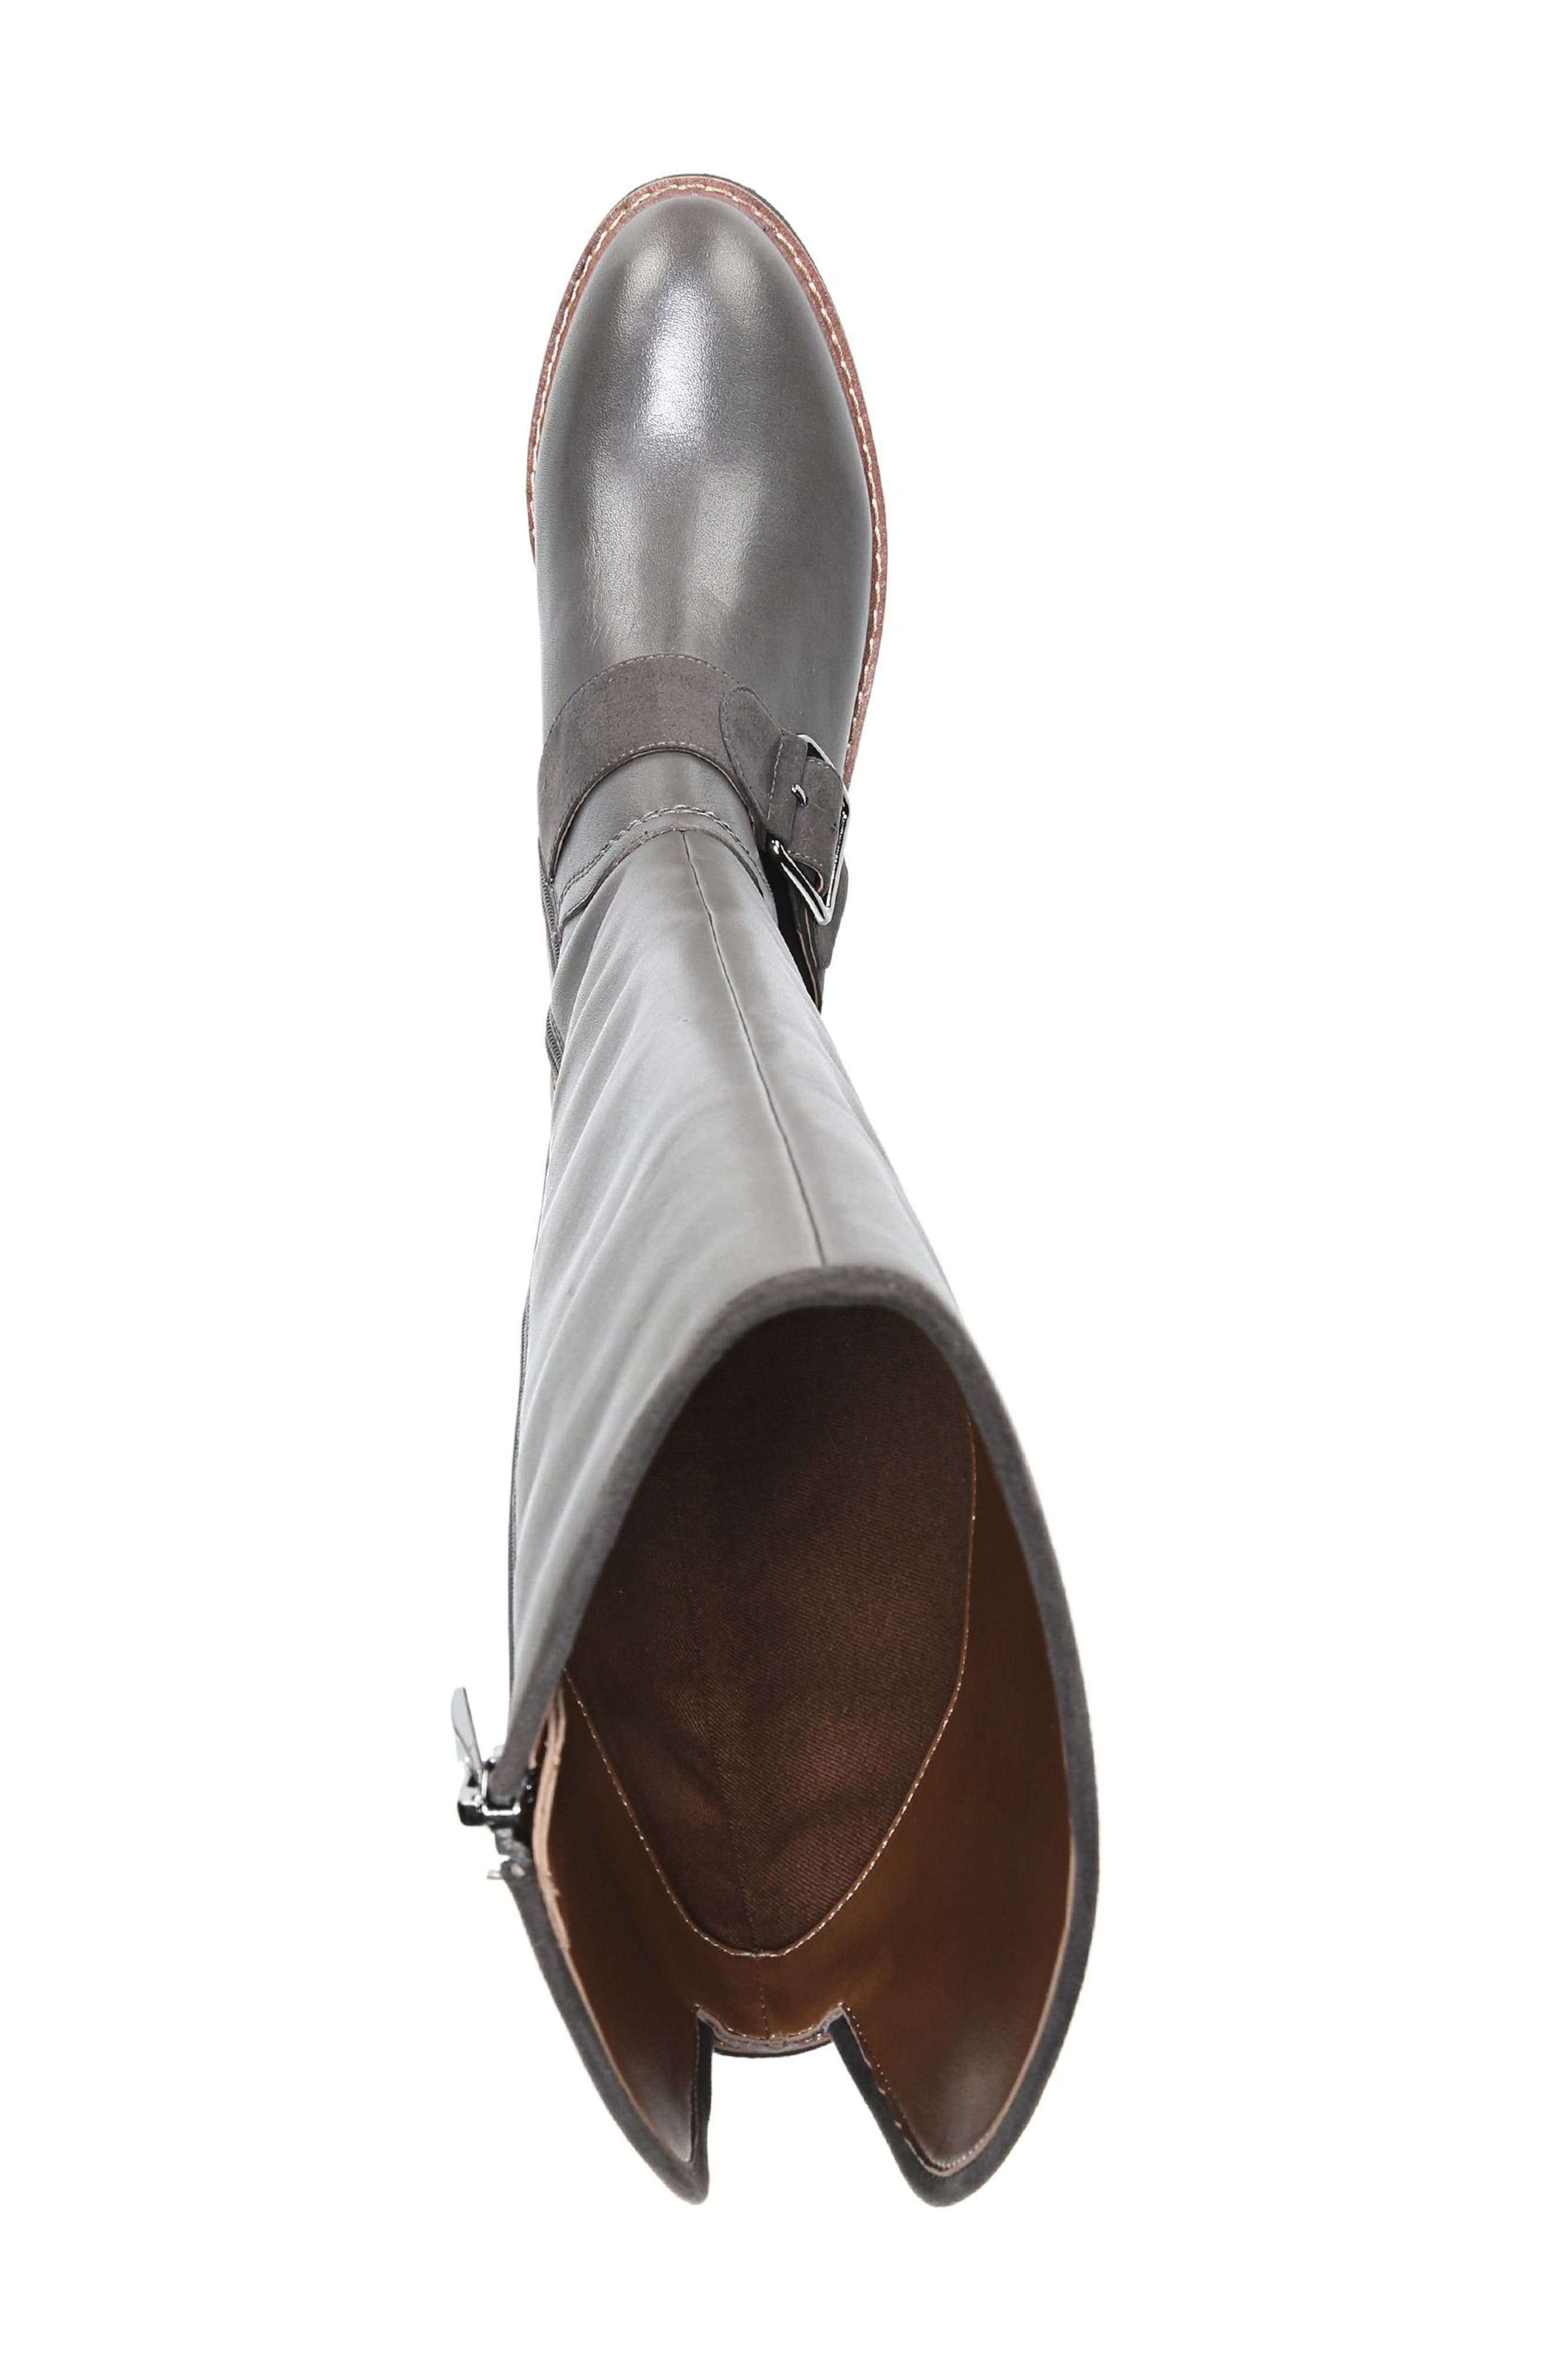 Cutler Riding Boot,                             Alternate thumbnail 5, color,                             Peat Leather